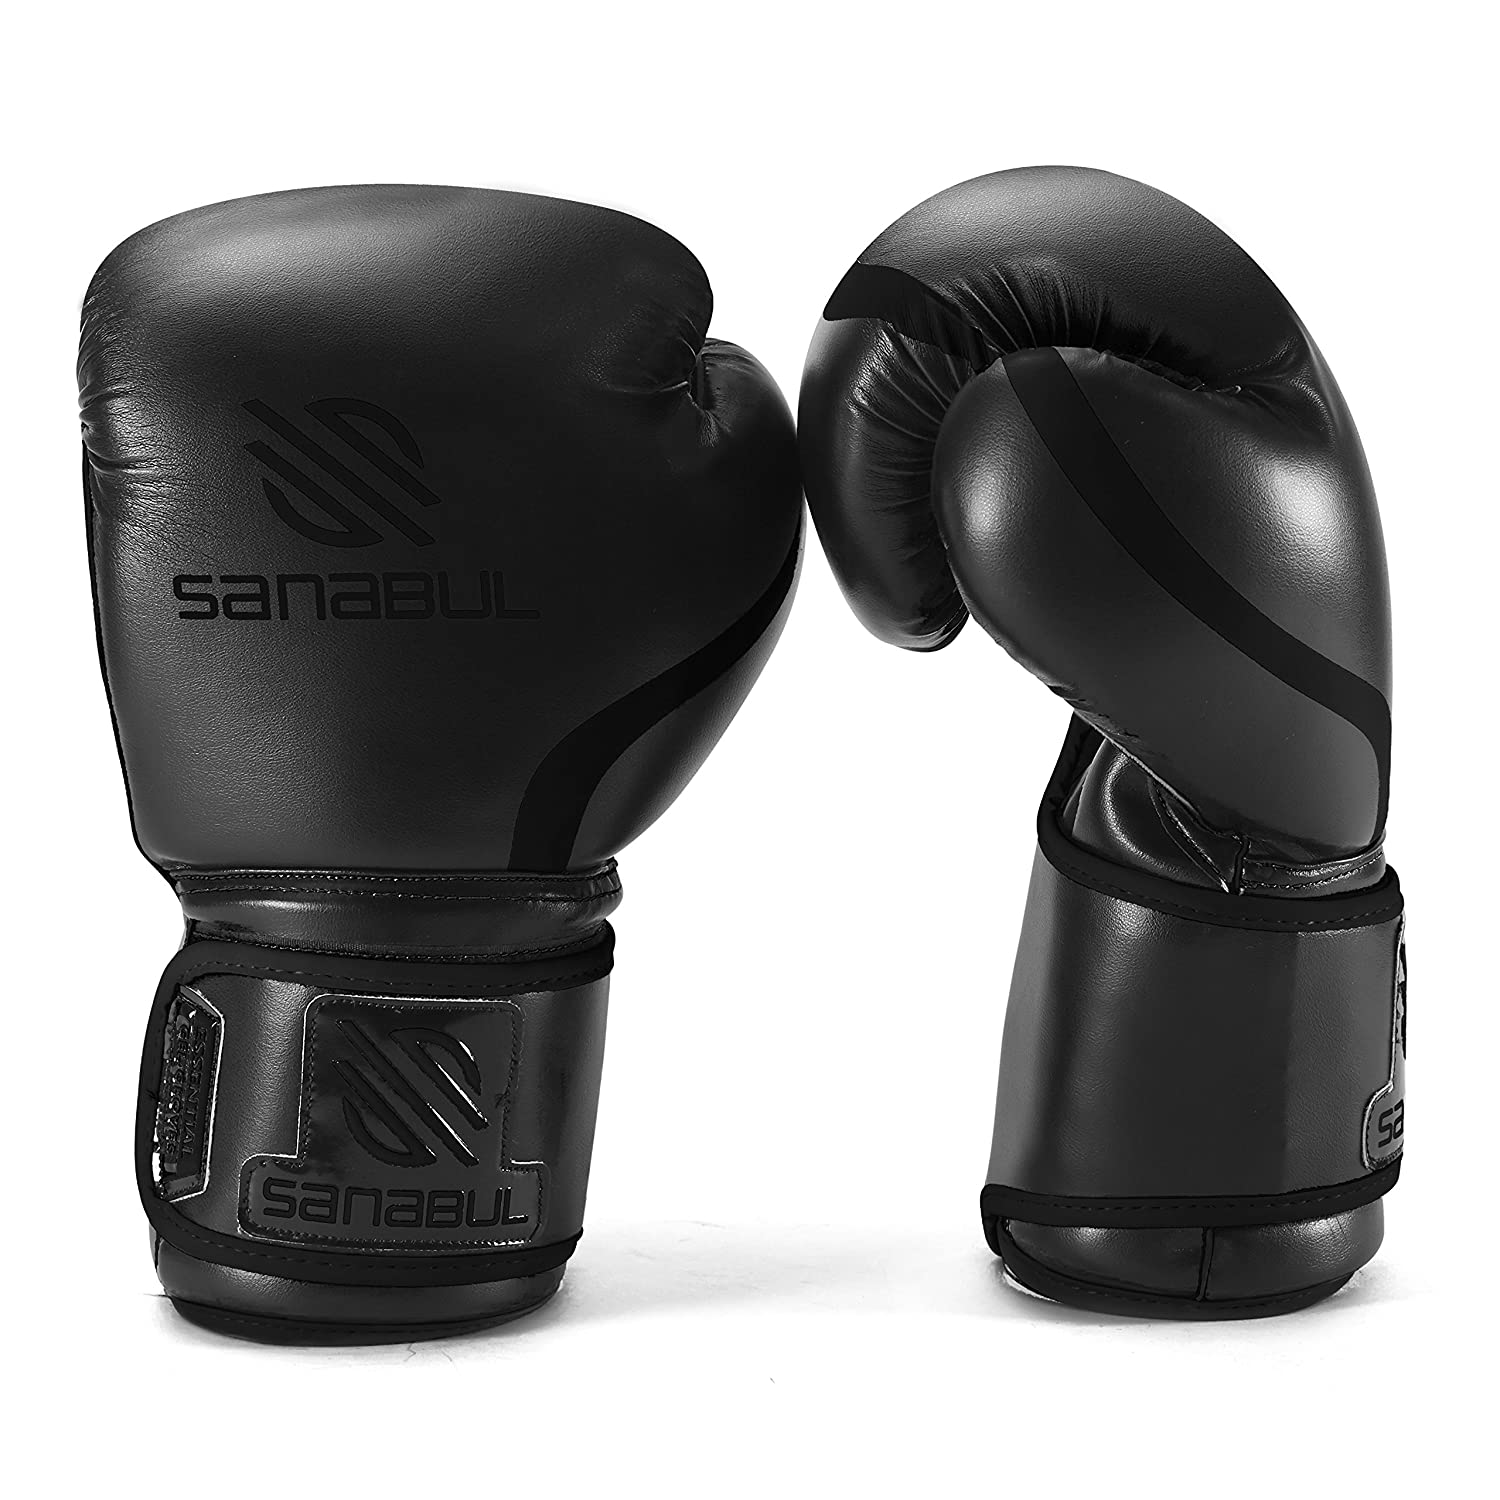 Sanabul Essential MMA Boxing Gloves Review